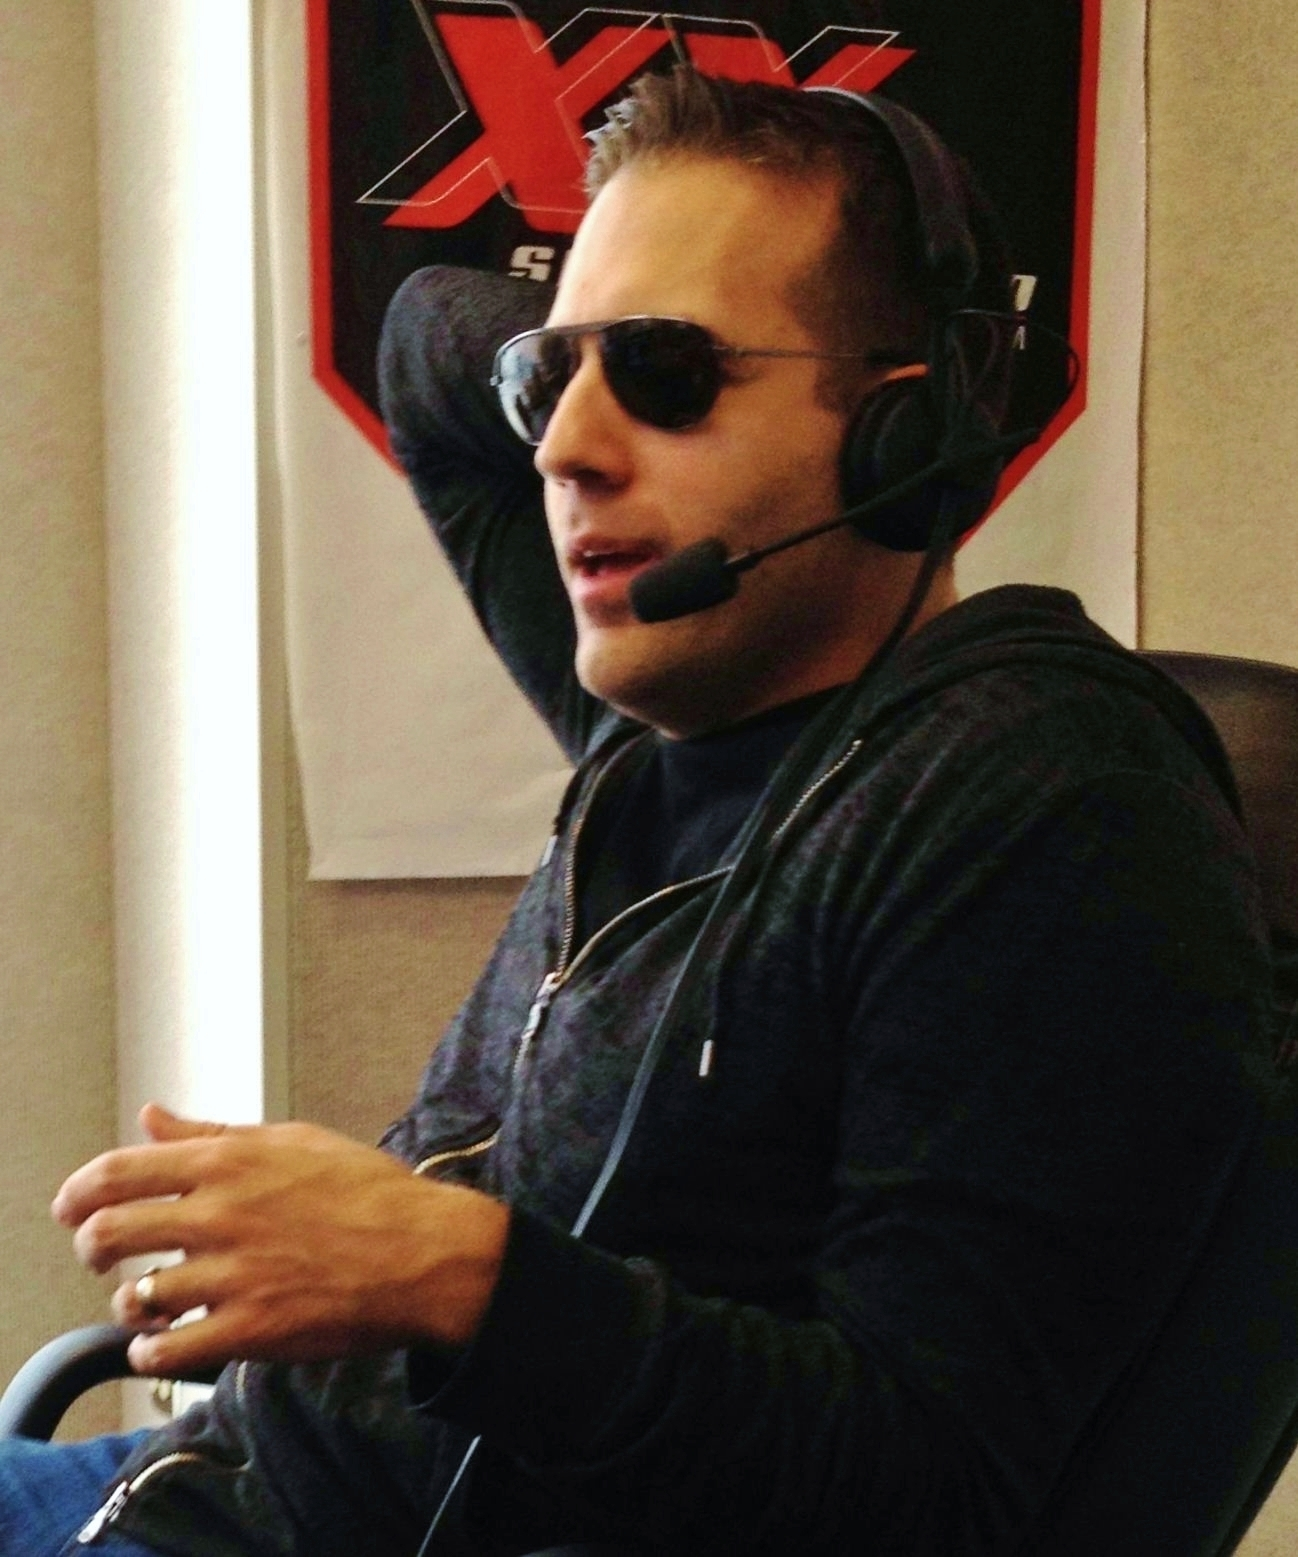 File:Max Kellerman cropped.jpg - Wikimedia Commons